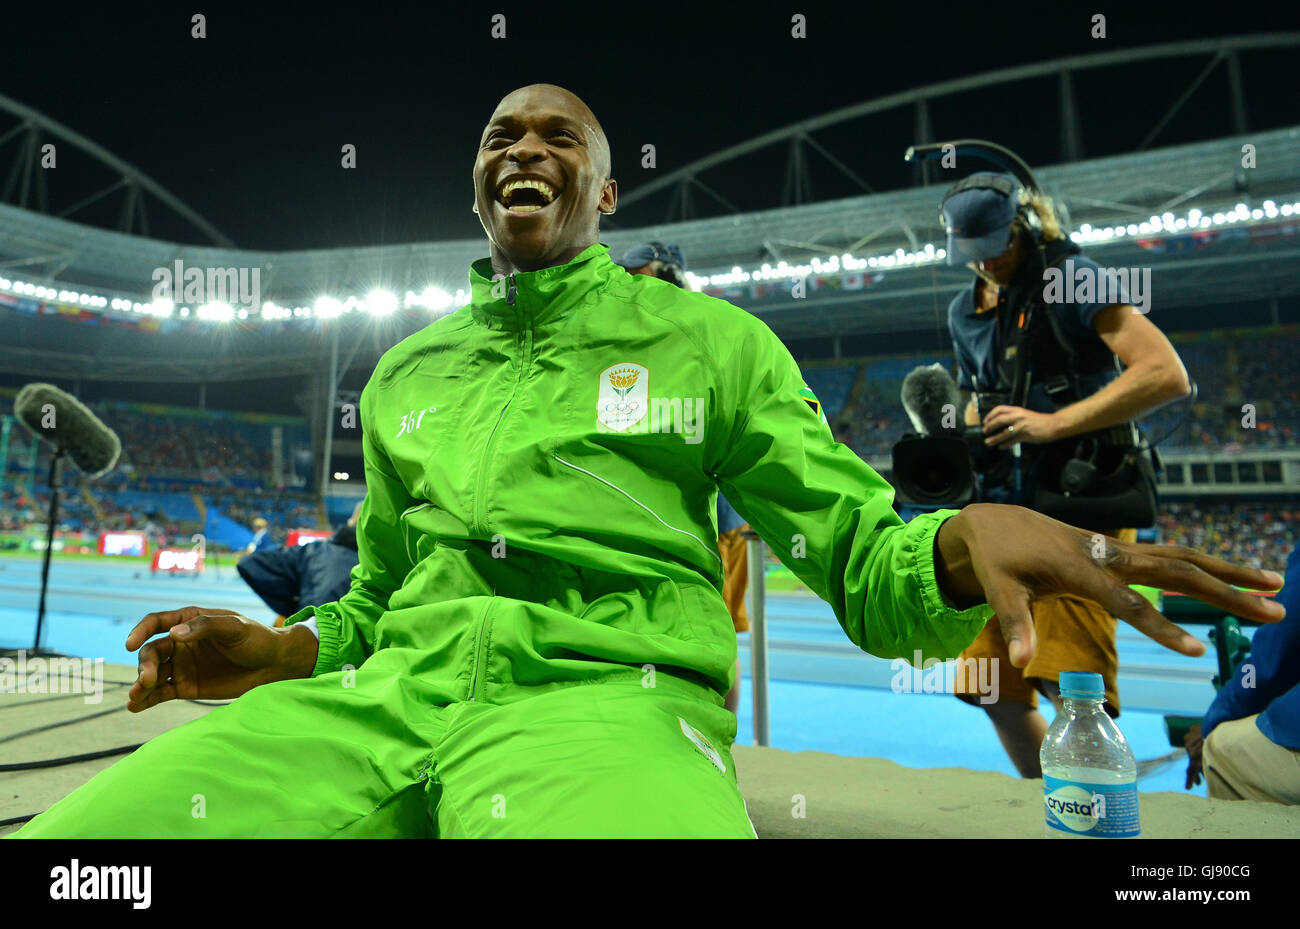 RIO DE JANEIRO, BRAZIL - AUGUST 13: Luvo Manyonga of South Africa smiles after wining the silver medal in the mens - Stock Image